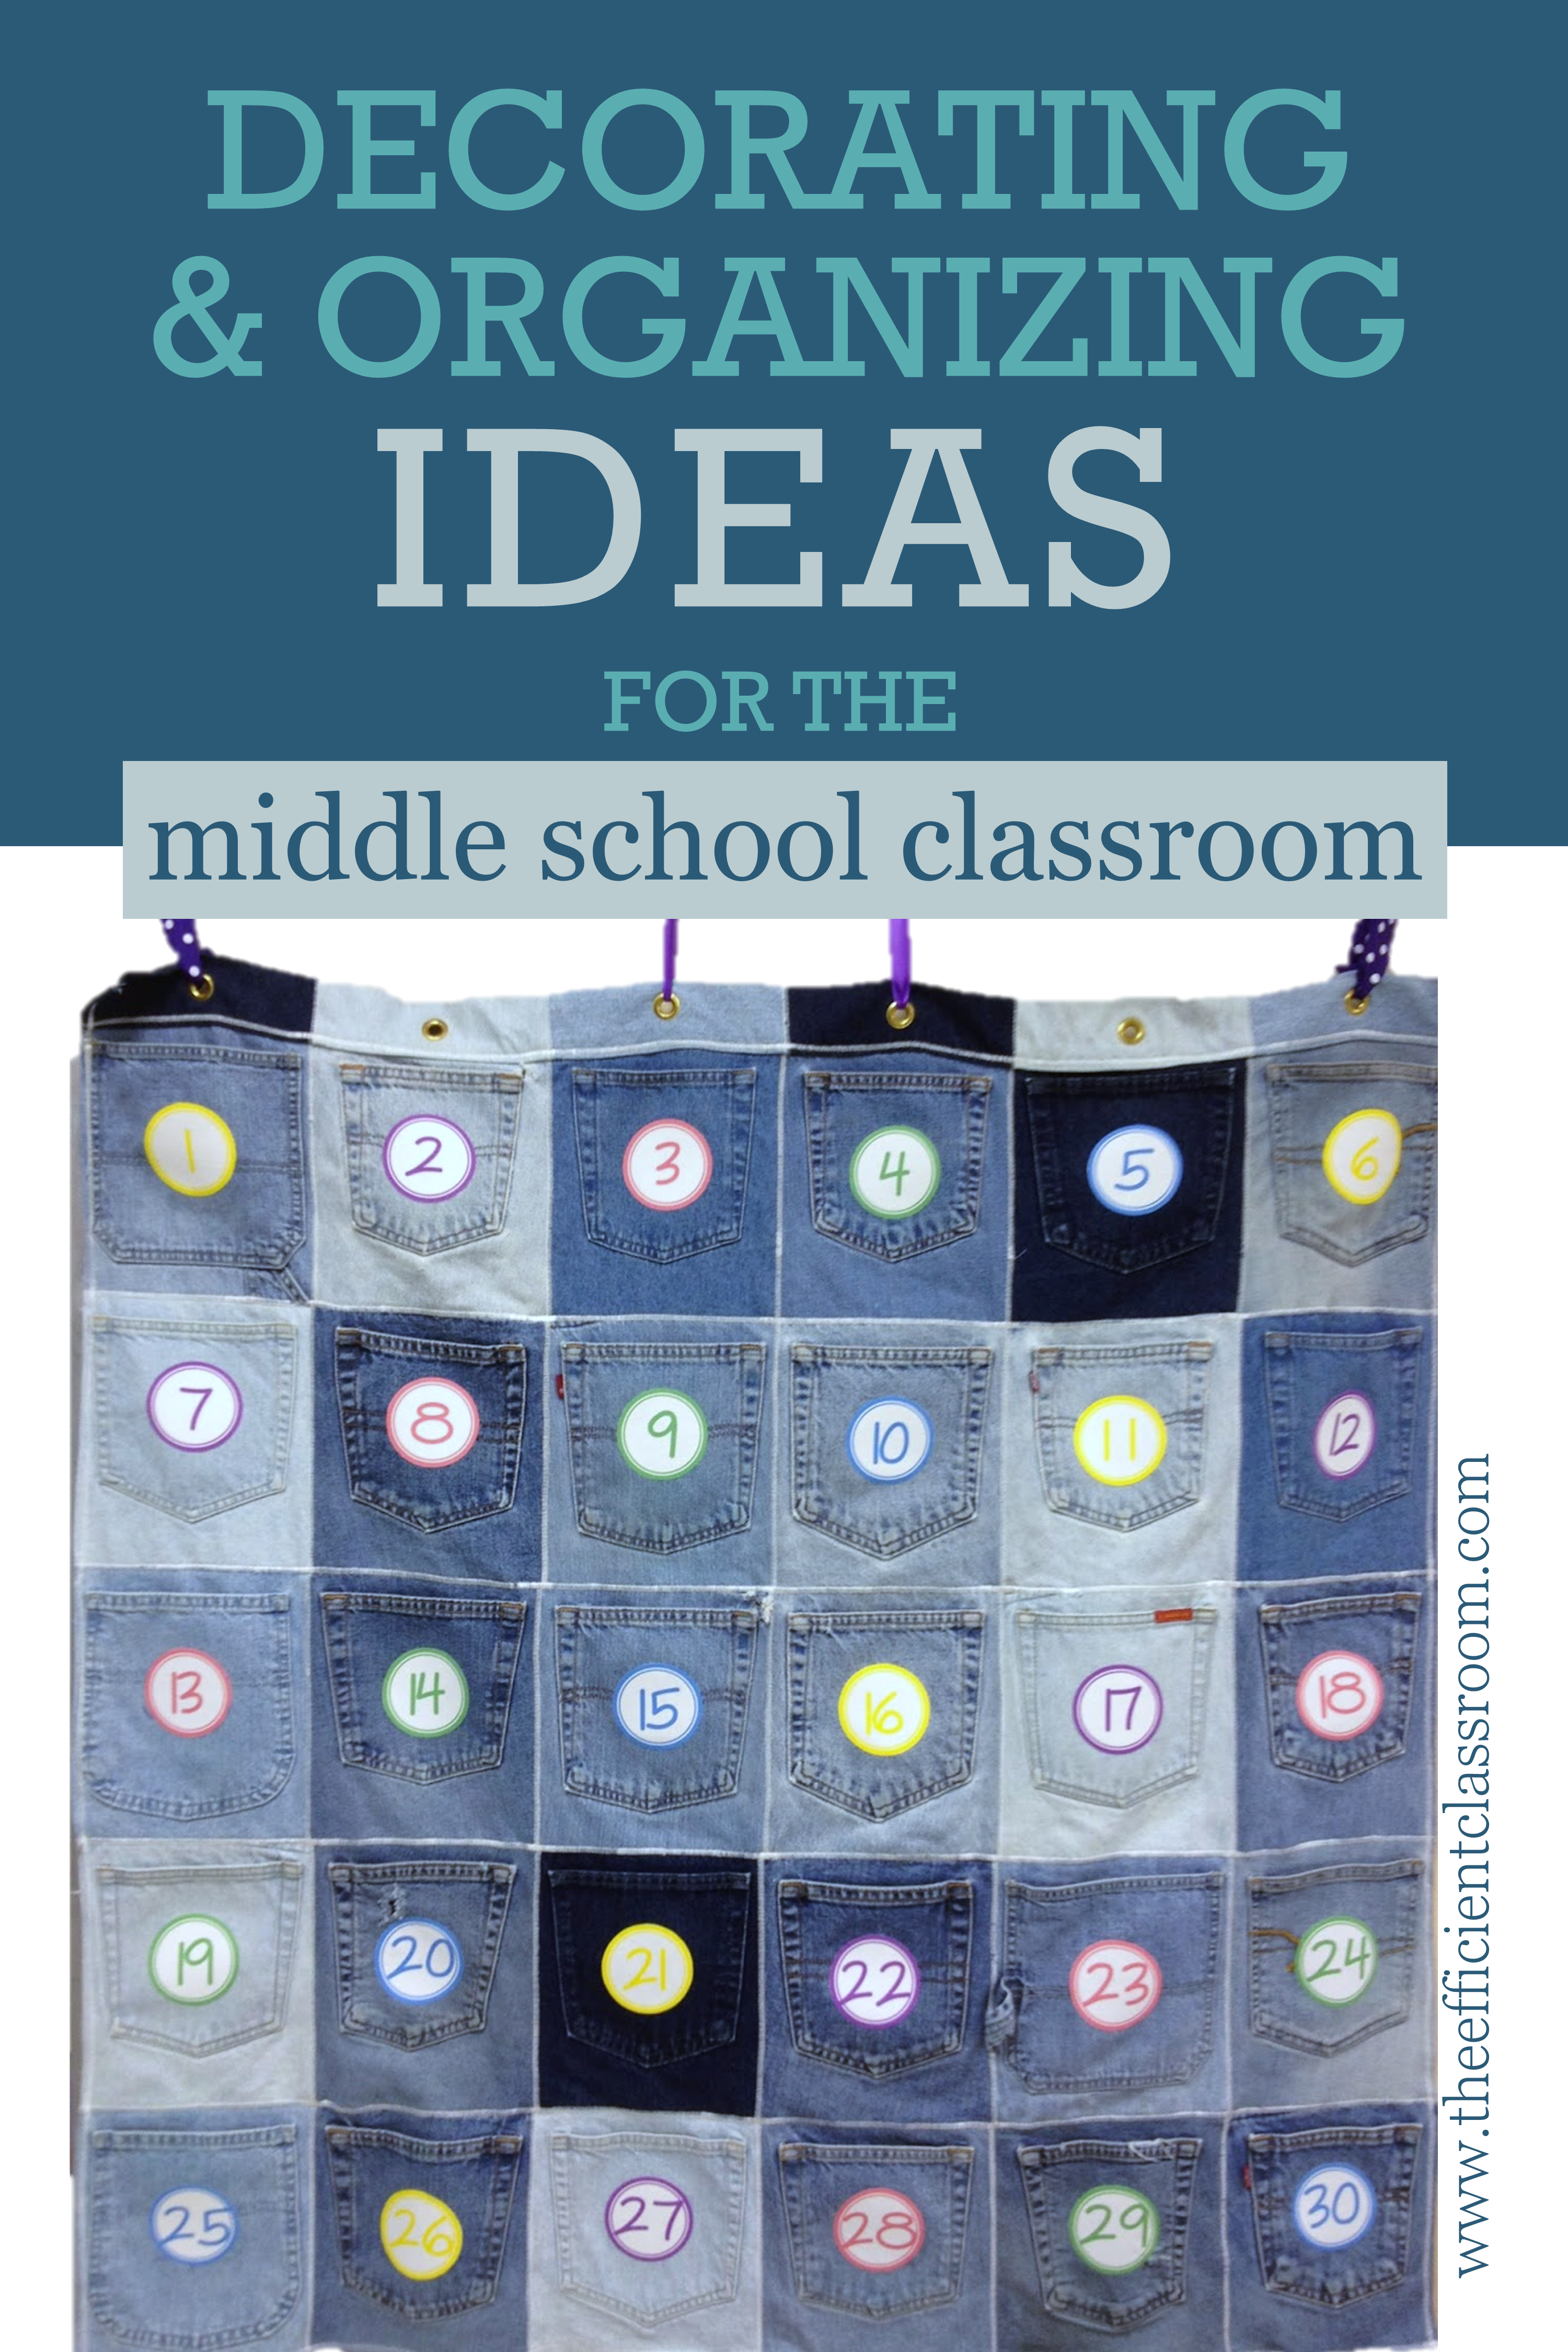 Decorating & Organizing in Middle School